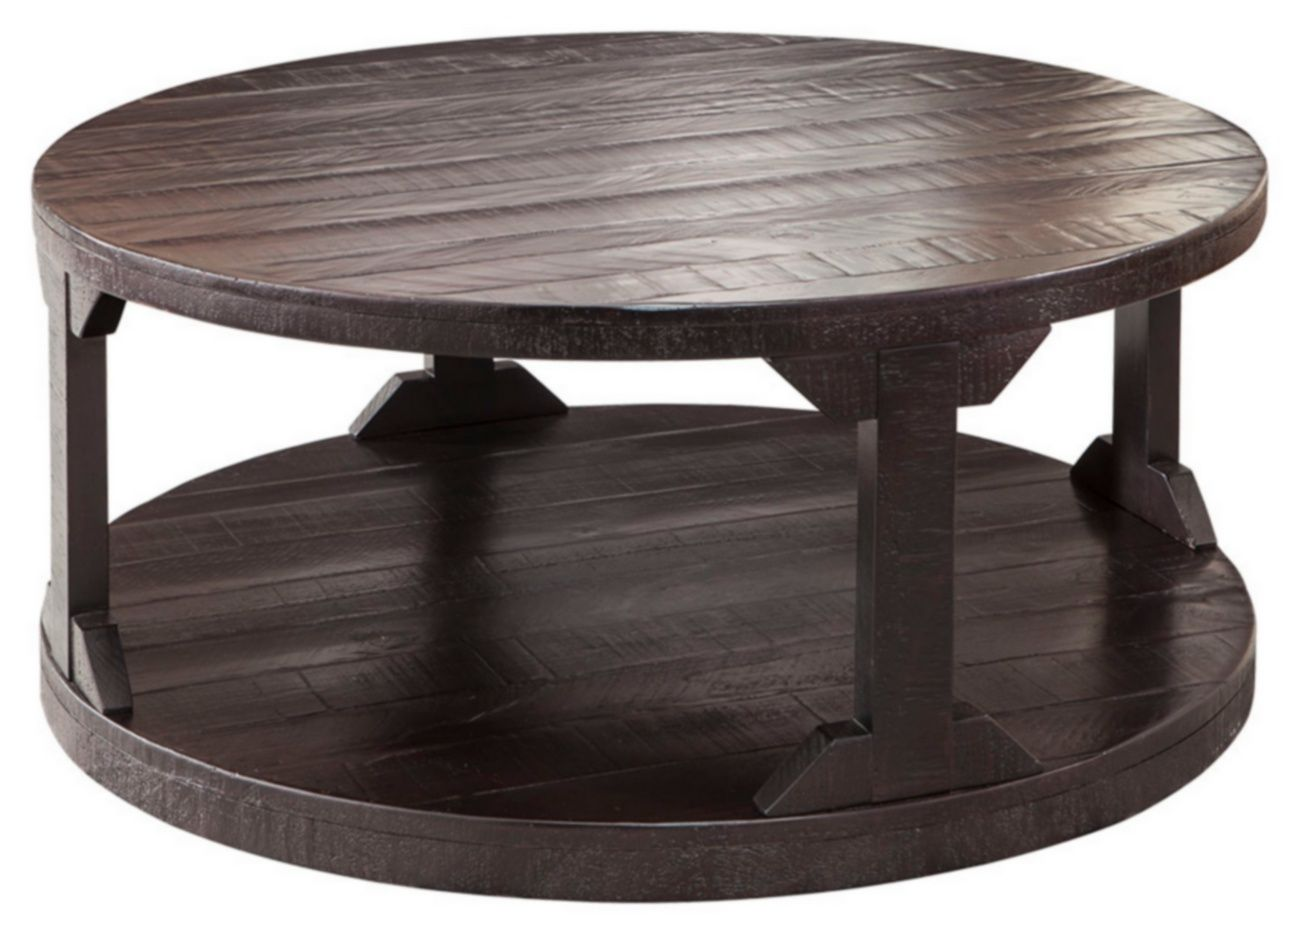 Signature Design Rogness Round Cocktail Table Ashley Furniture T745 8